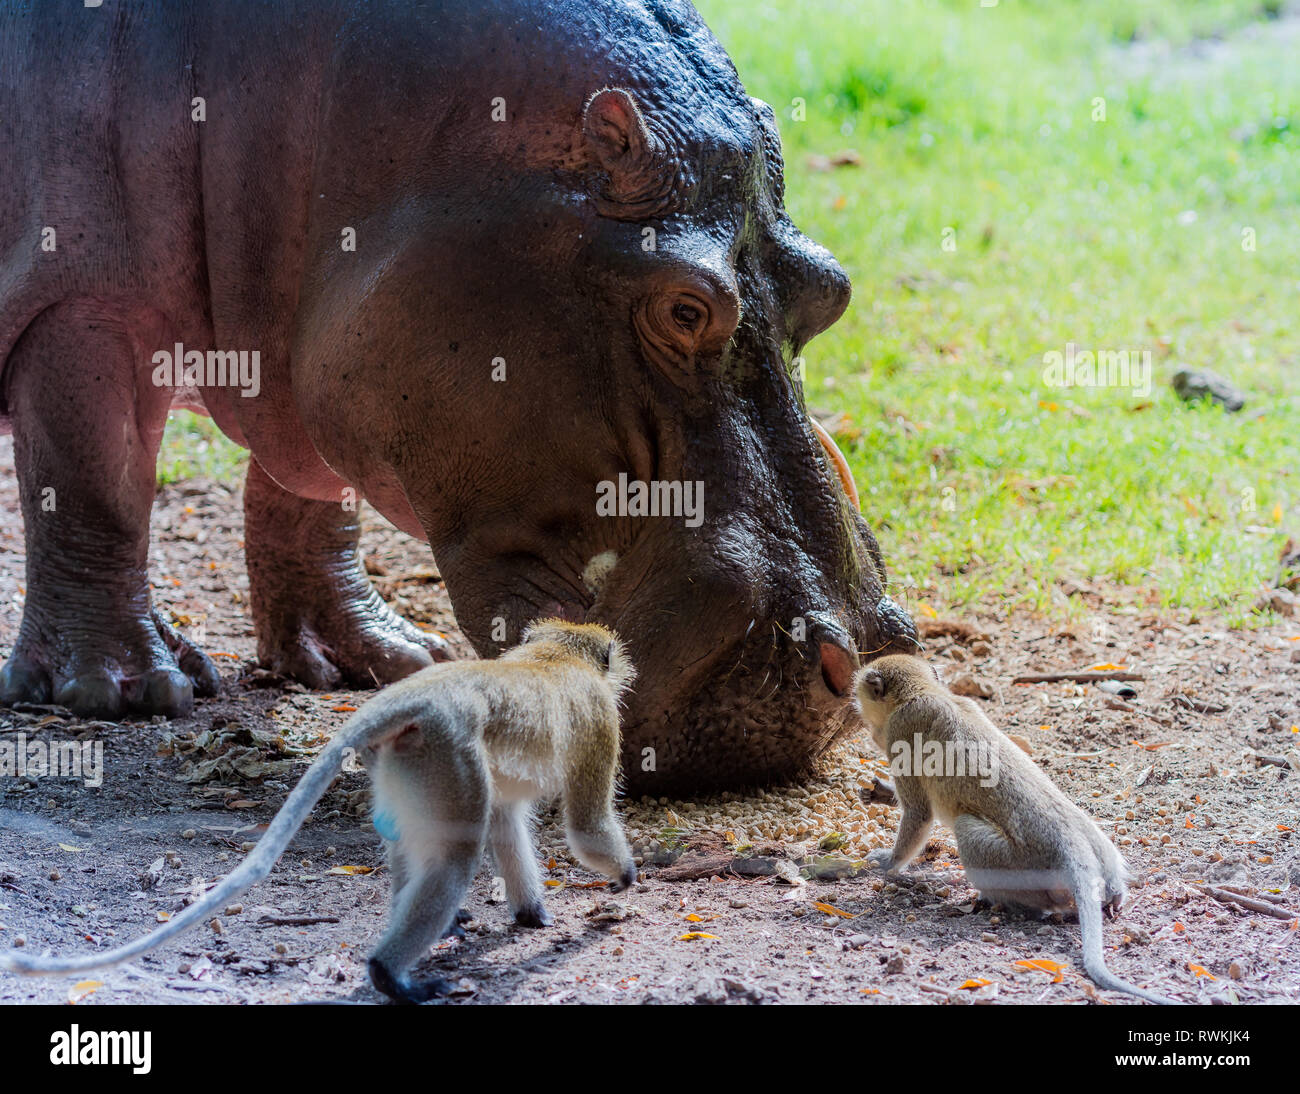 A hippo with Two Monkeys - Stock Image